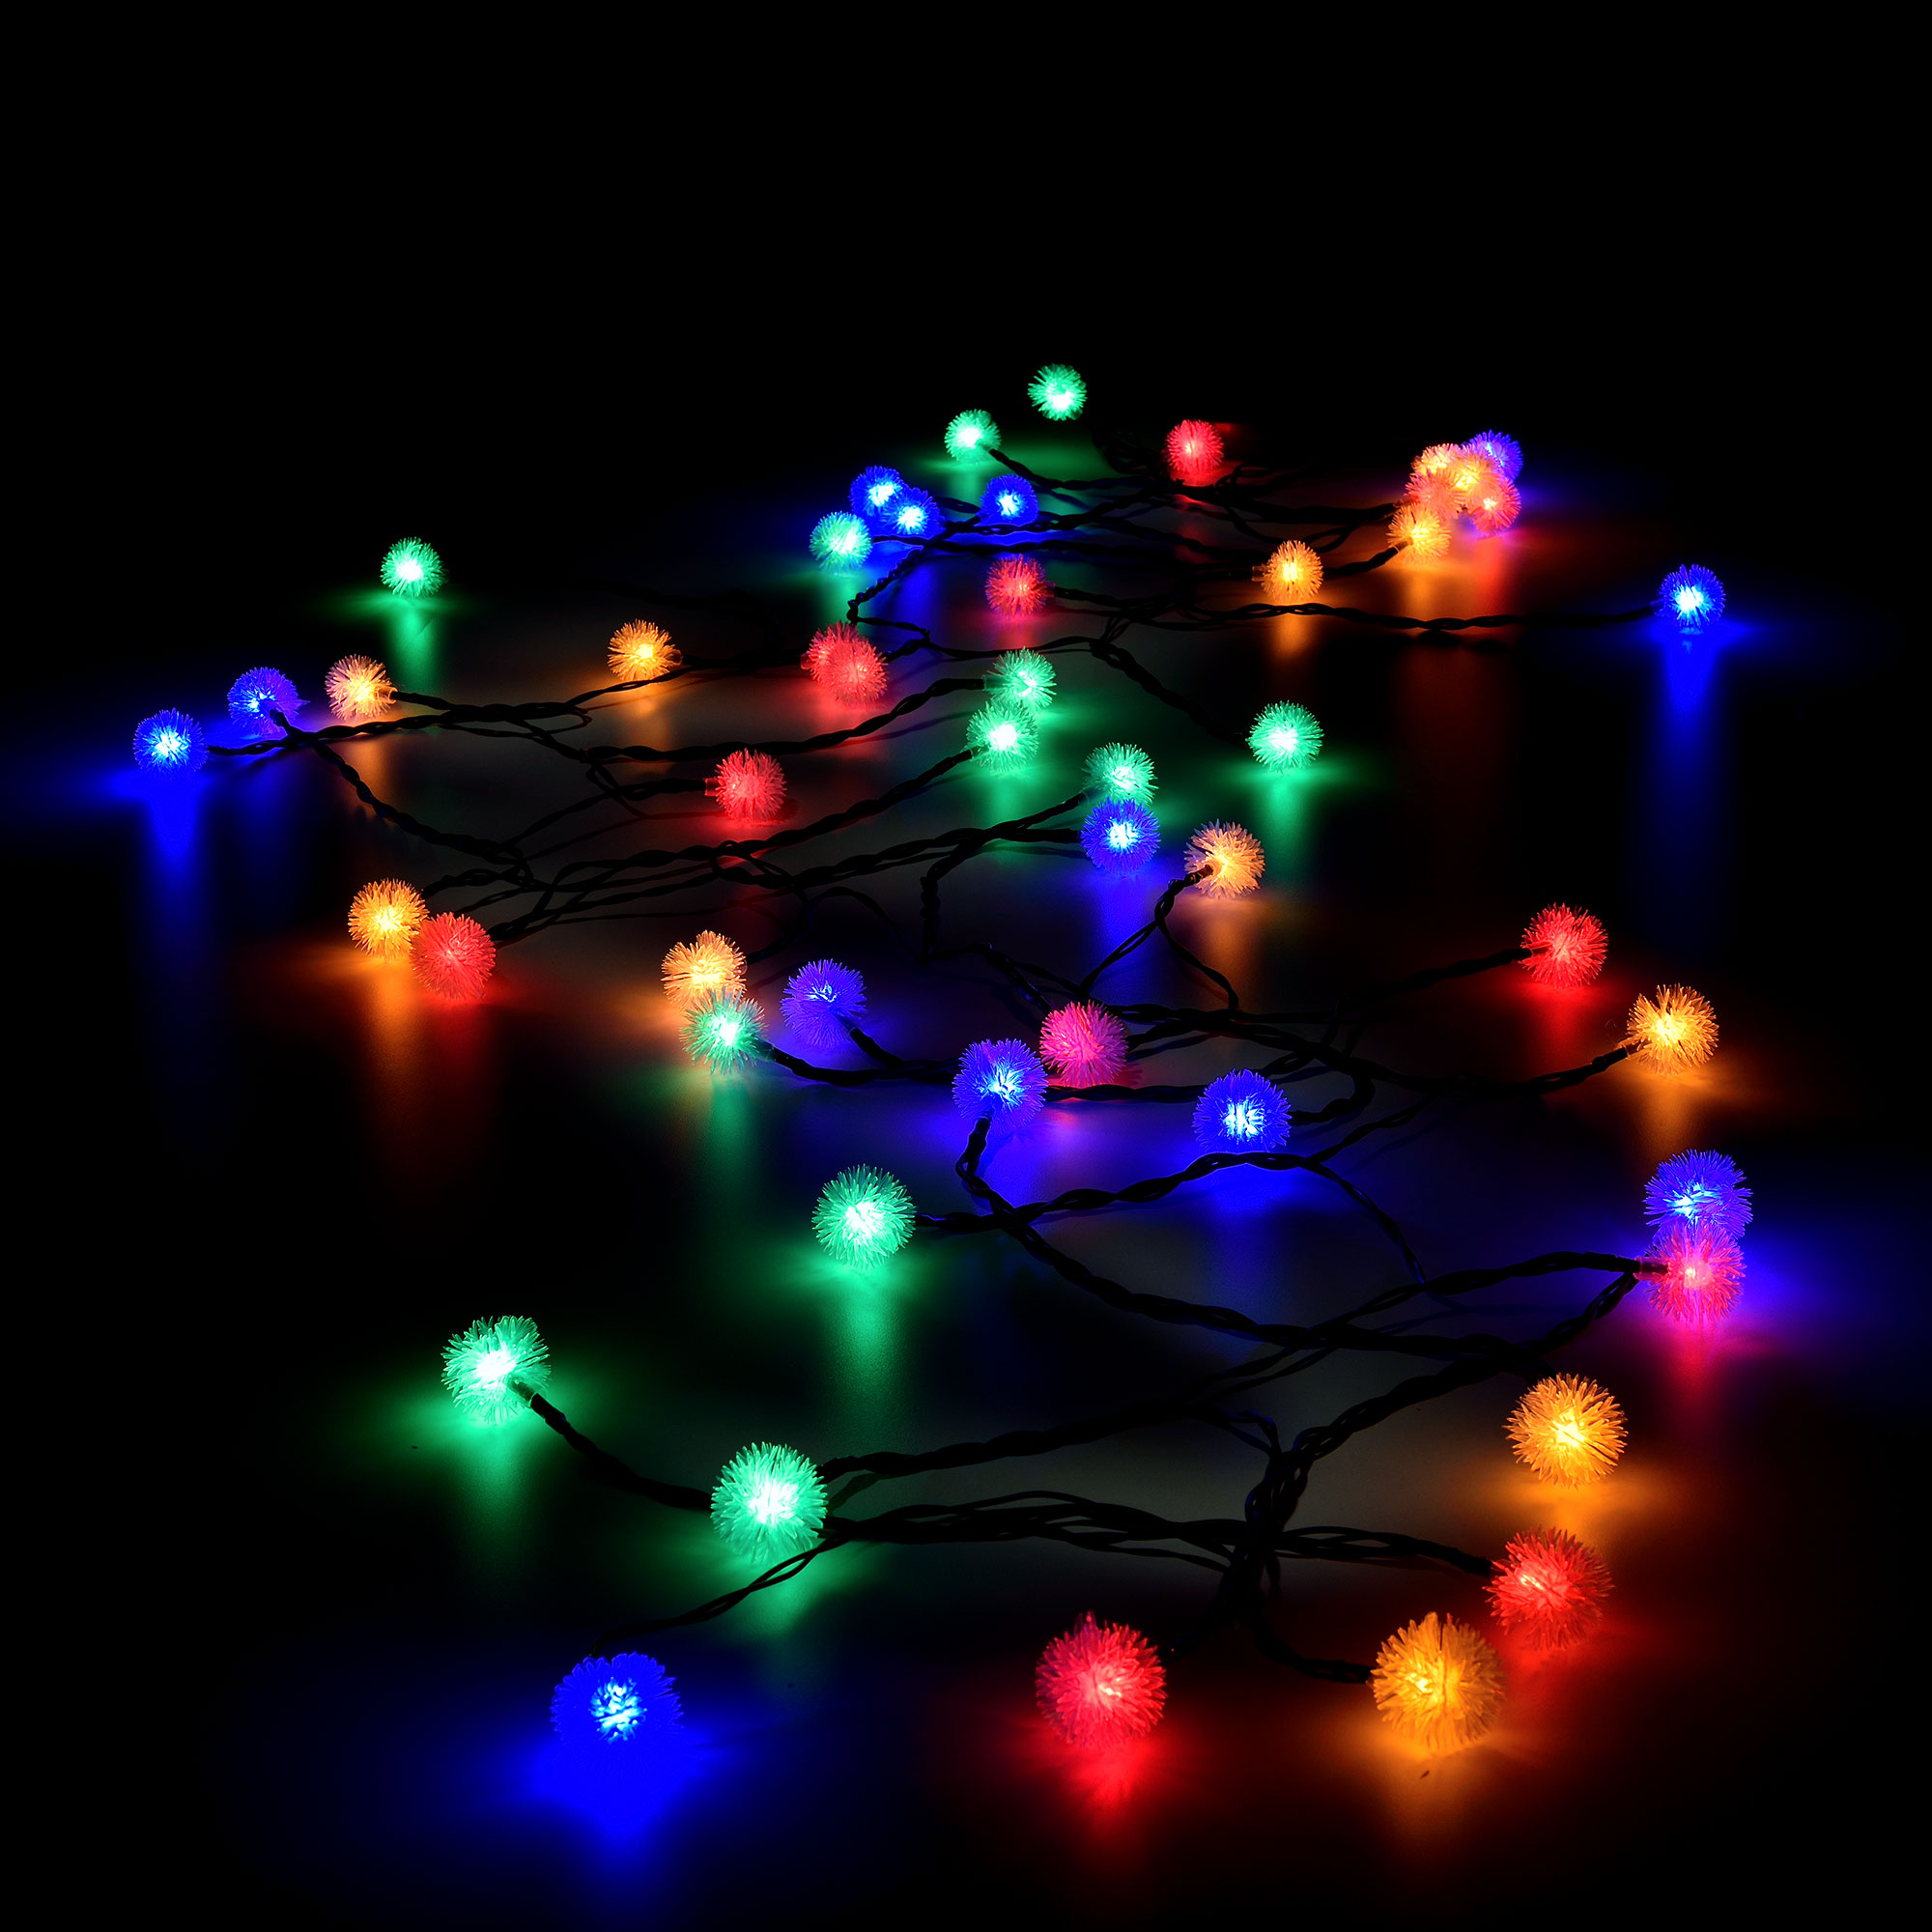 led kugel lichterkette netzteil innen au en weihnachten bunt kerze ebay. Black Bedroom Furniture Sets. Home Design Ideas